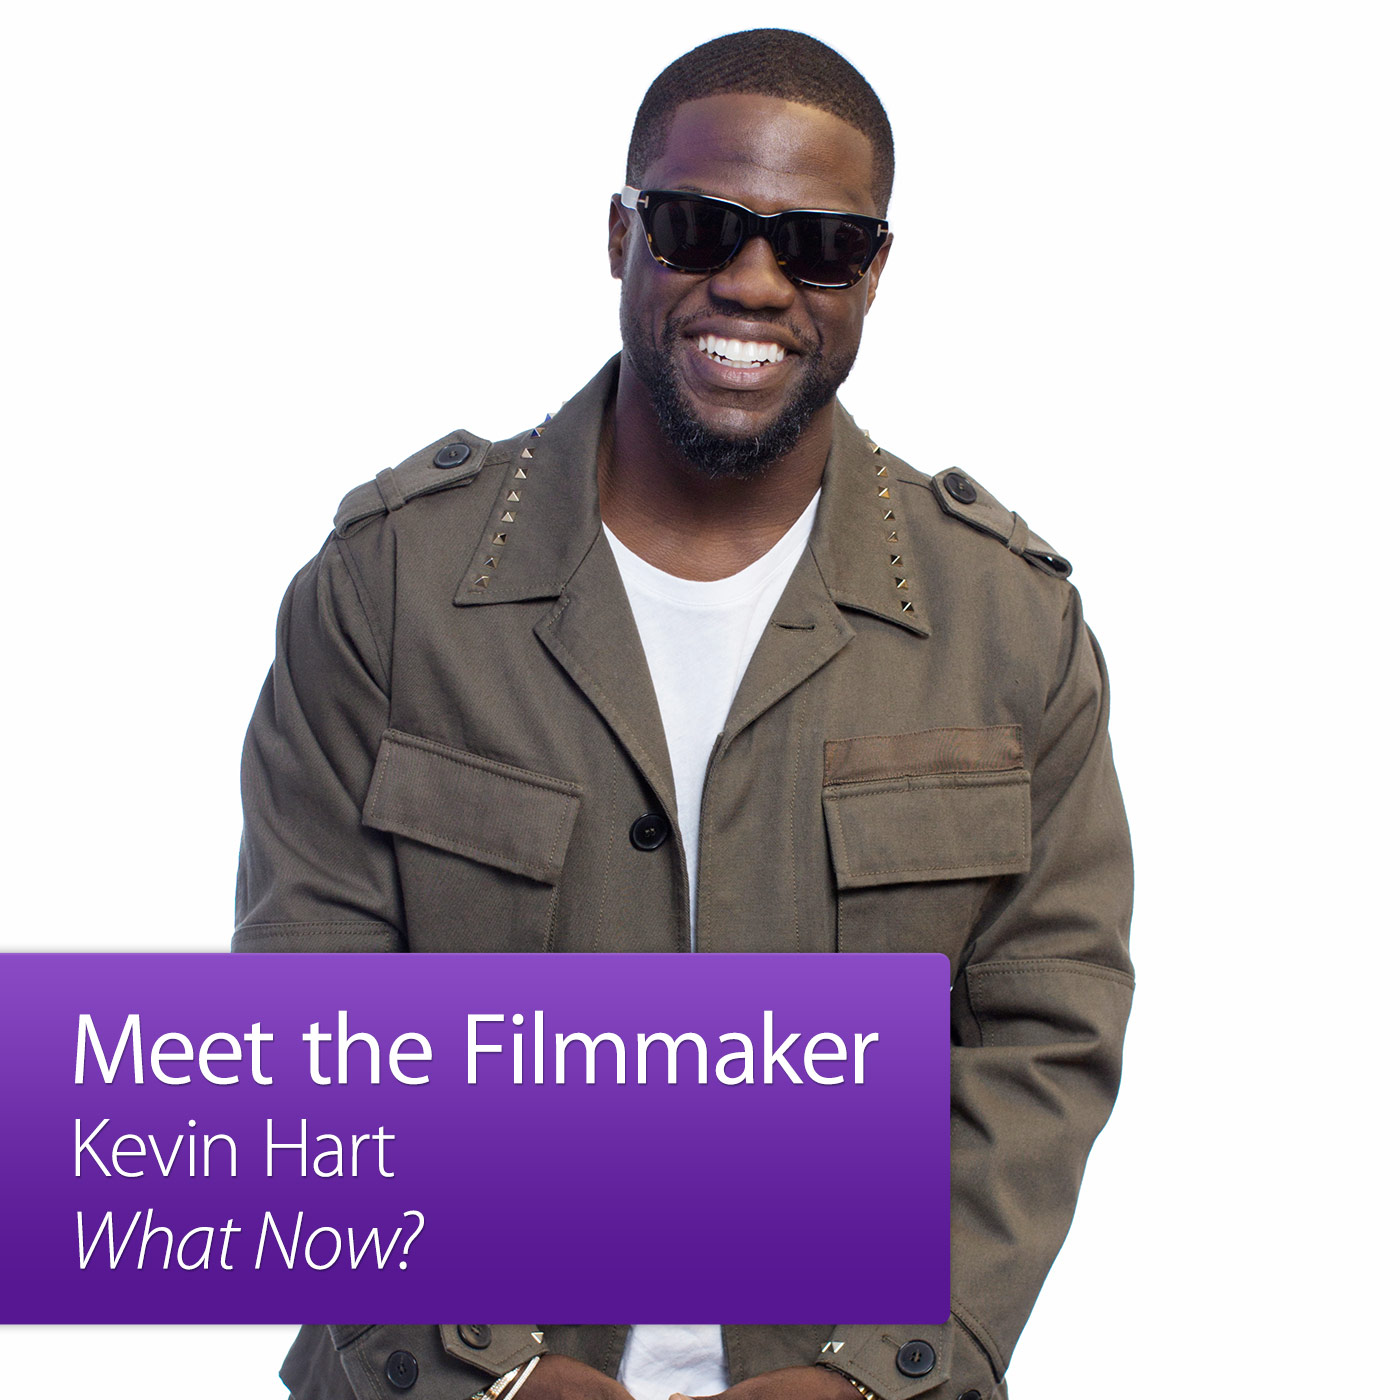 Kevin Hart: Meet the Filmmaker